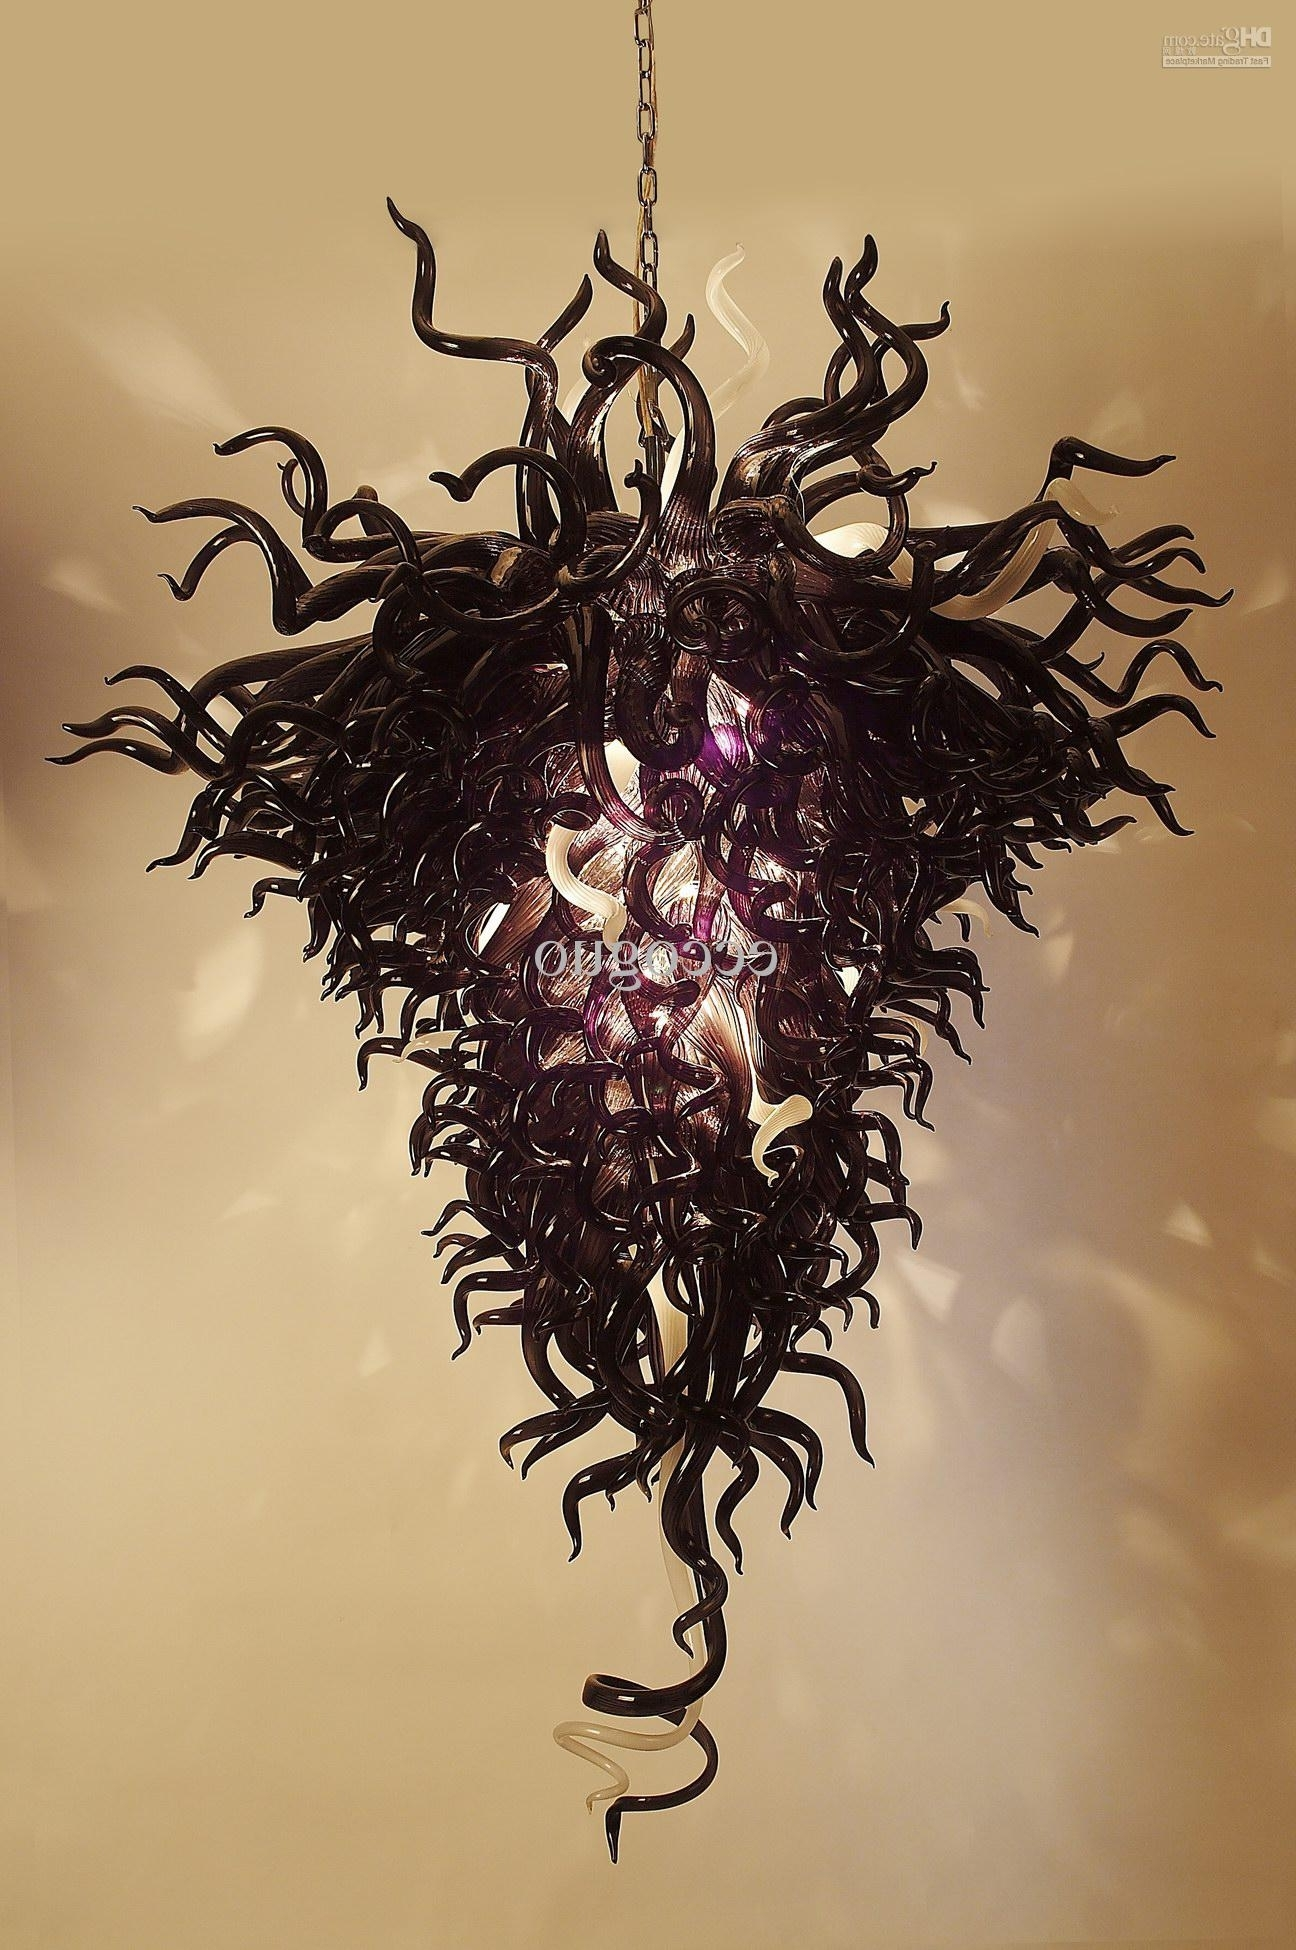 [%2018 100% Hand Blown Artistic Lamp Dale Chihuly Murano Borosilicate With Fashionable Antique Black Chandelier|Antique Black Chandelier In Most Popular 2018 100% Hand Blown Artistic Lamp Dale Chihuly Murano Borosilicate|Popular Antique Black Chandelier With 2018 100% Hand Blown Artistic Lamp Dale Chihuly Murano Borosilicate|Popular 2018 100% Hand Blown Artistic Lamp Dale Chihuly Murano Borosilicate Within Antique Black Chandelier%] (View 20 of 20)